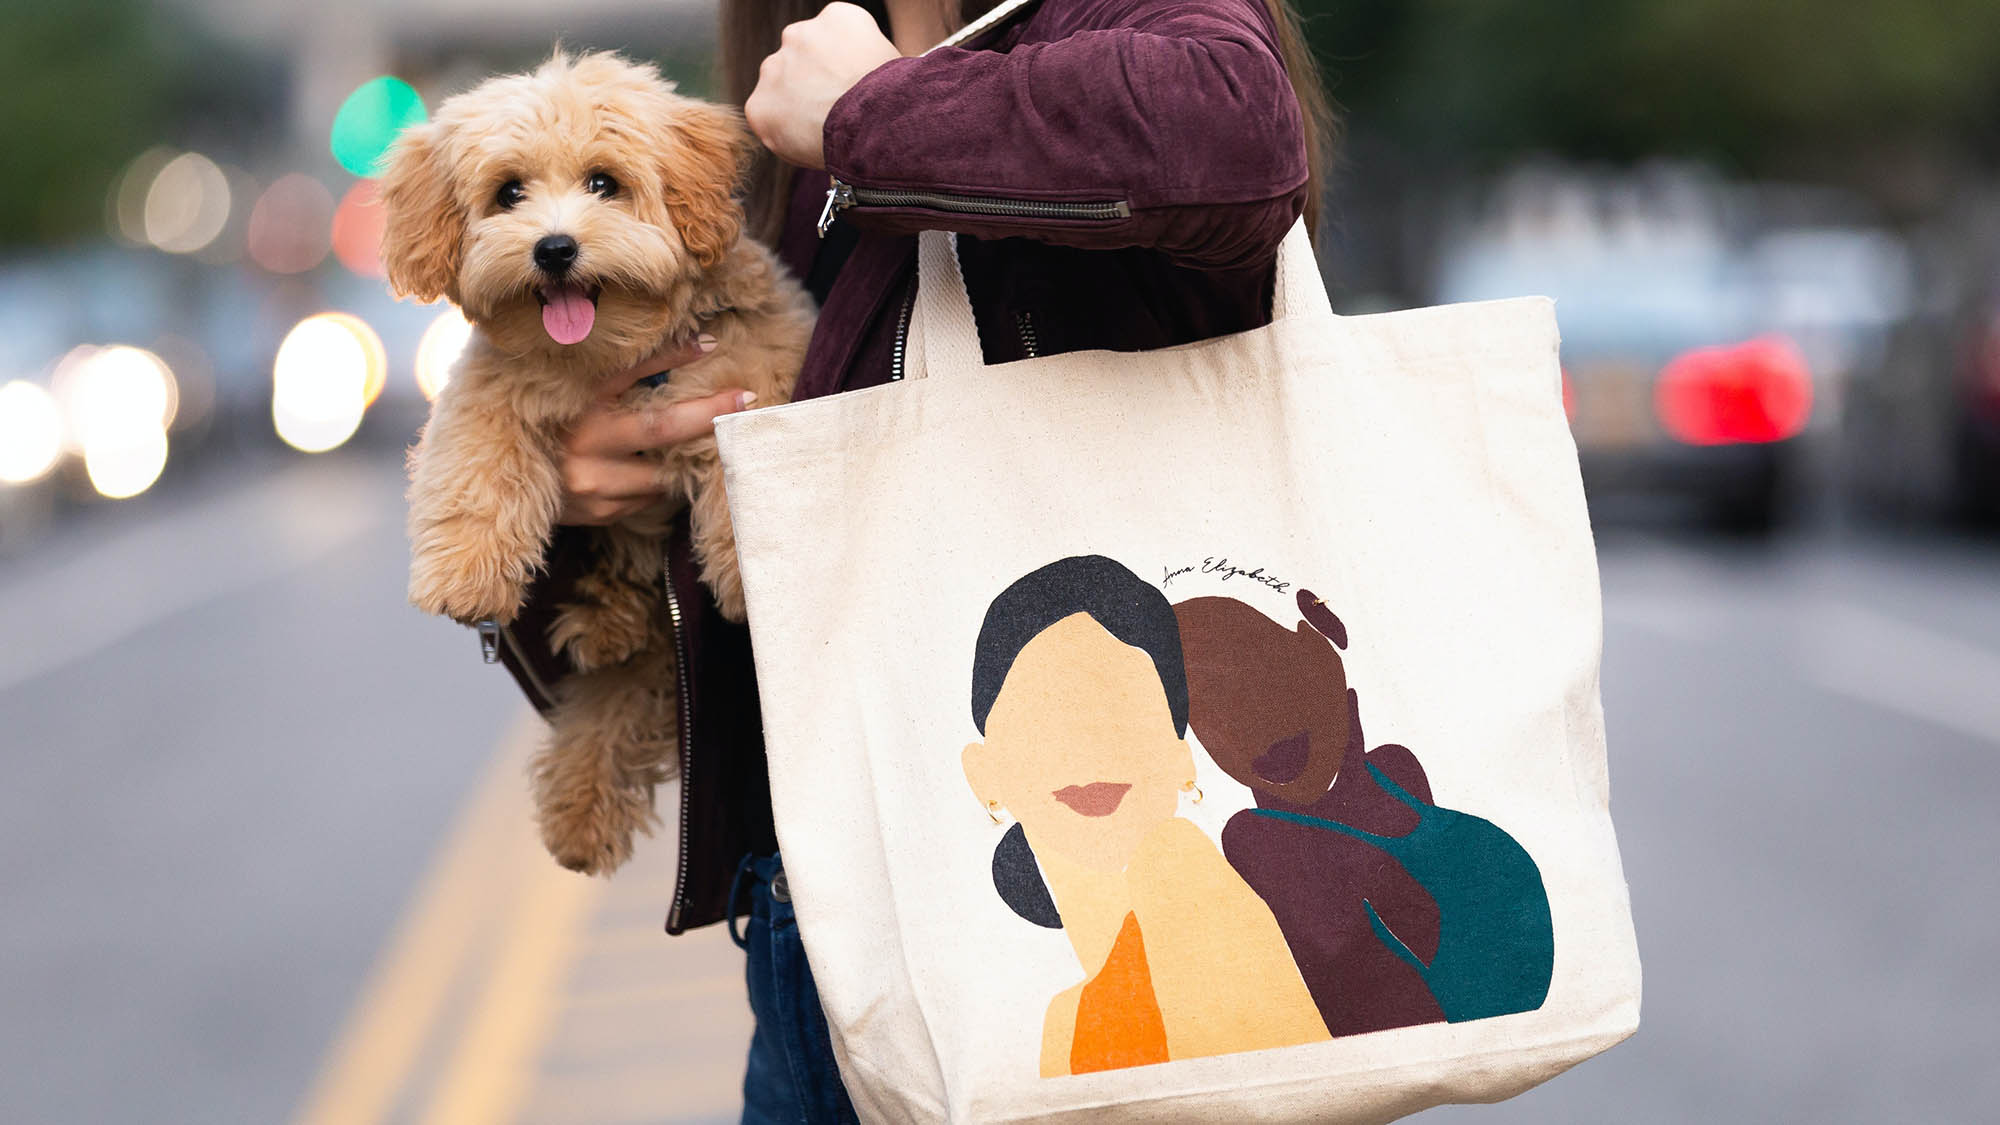 Woman on NYC street holding brown puppy and tote bag with two illustrated women